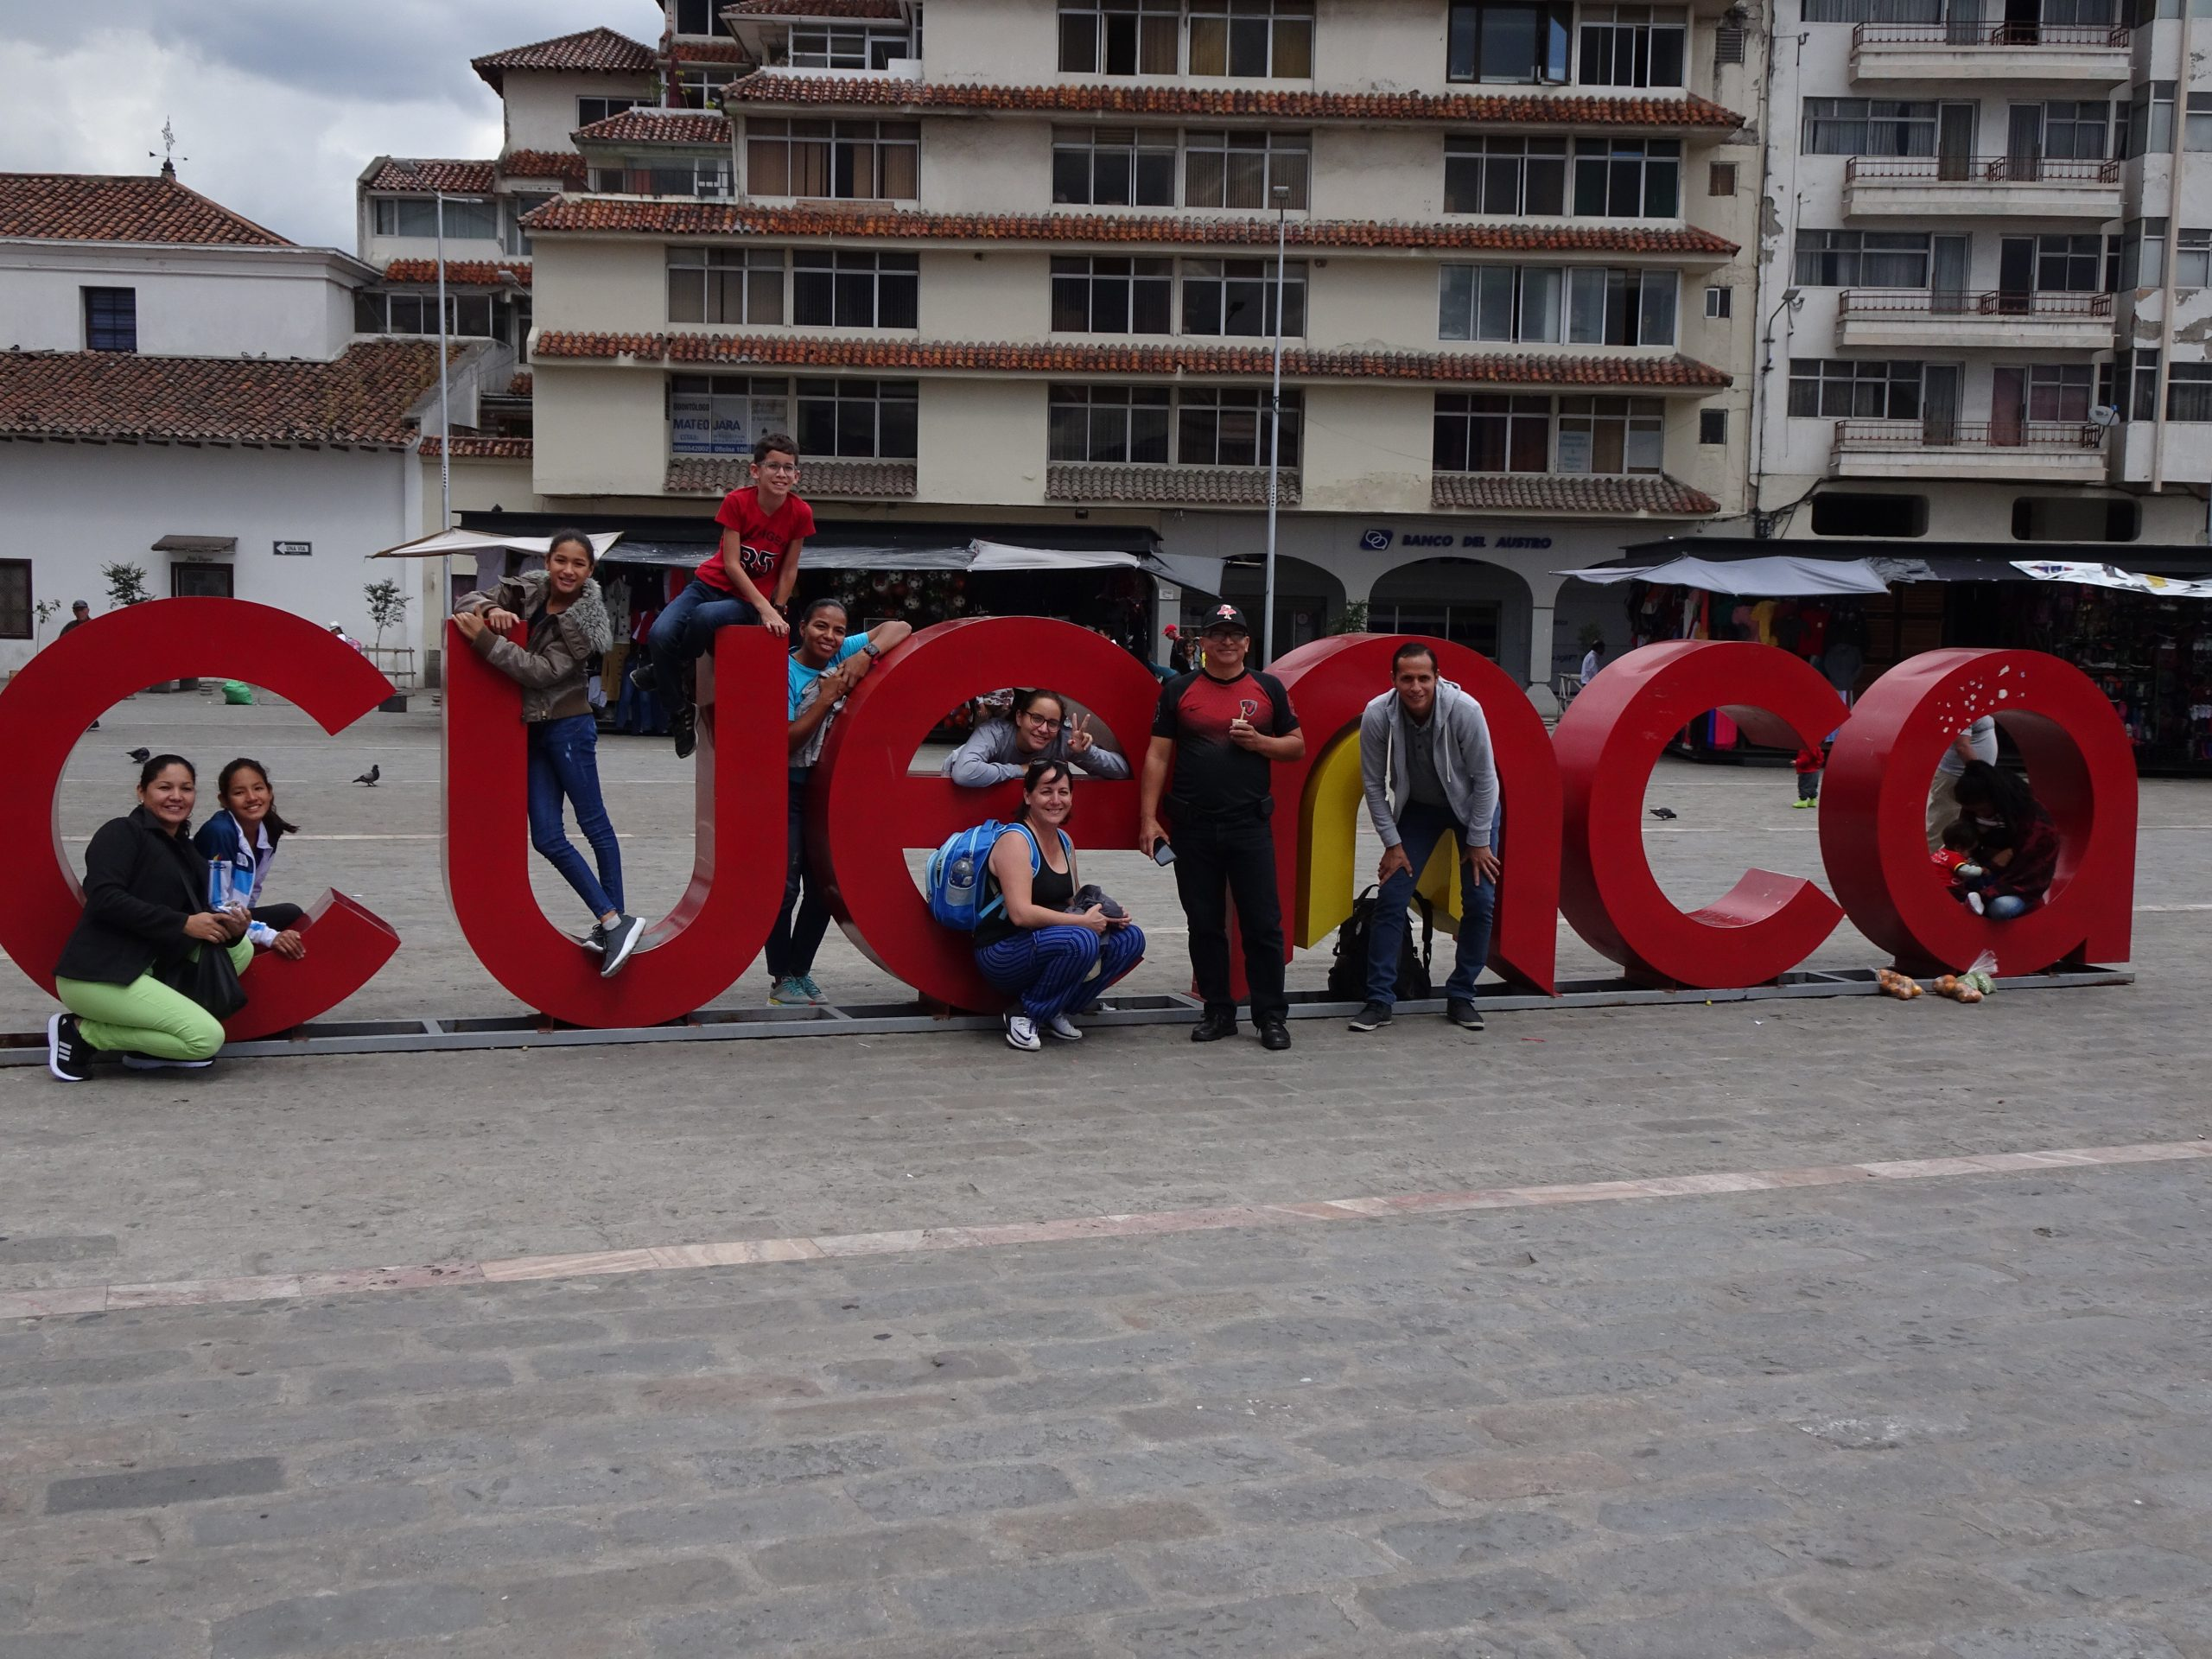 large letters in street spelling out